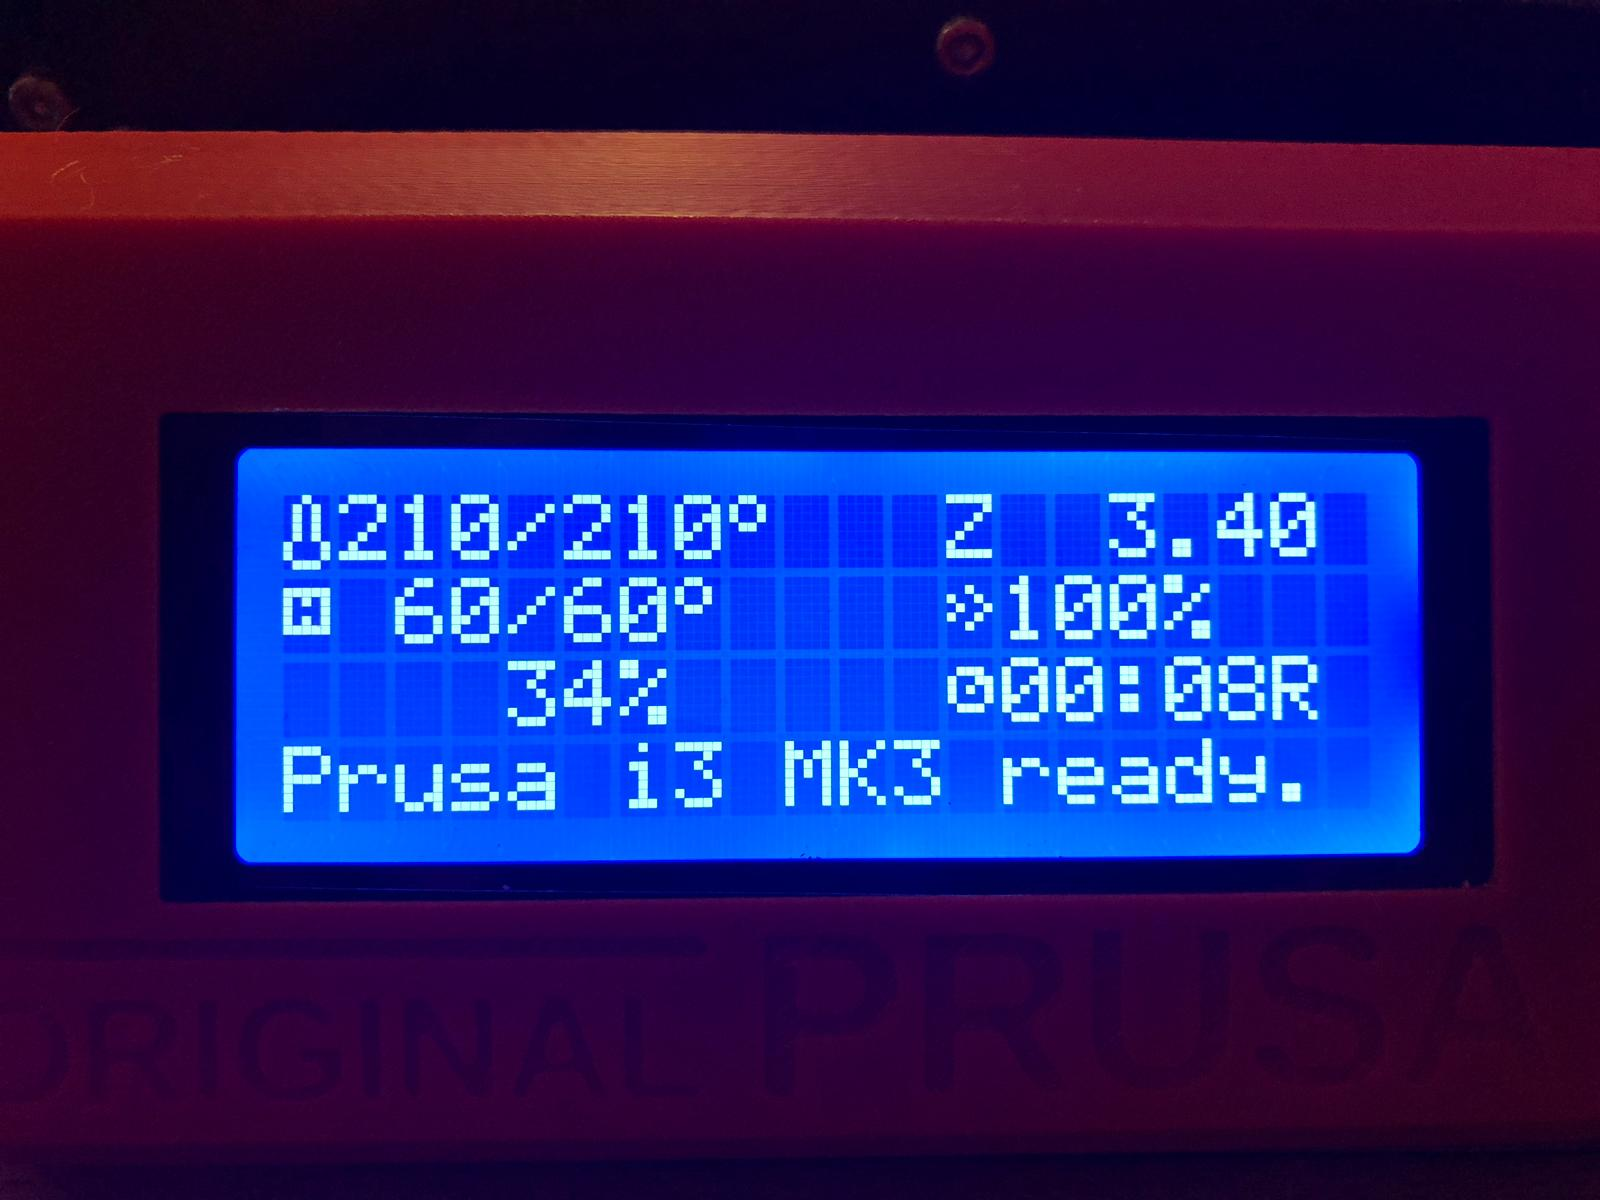 Printer pauses during printing · Issue #545 · prusa3d/Prusa